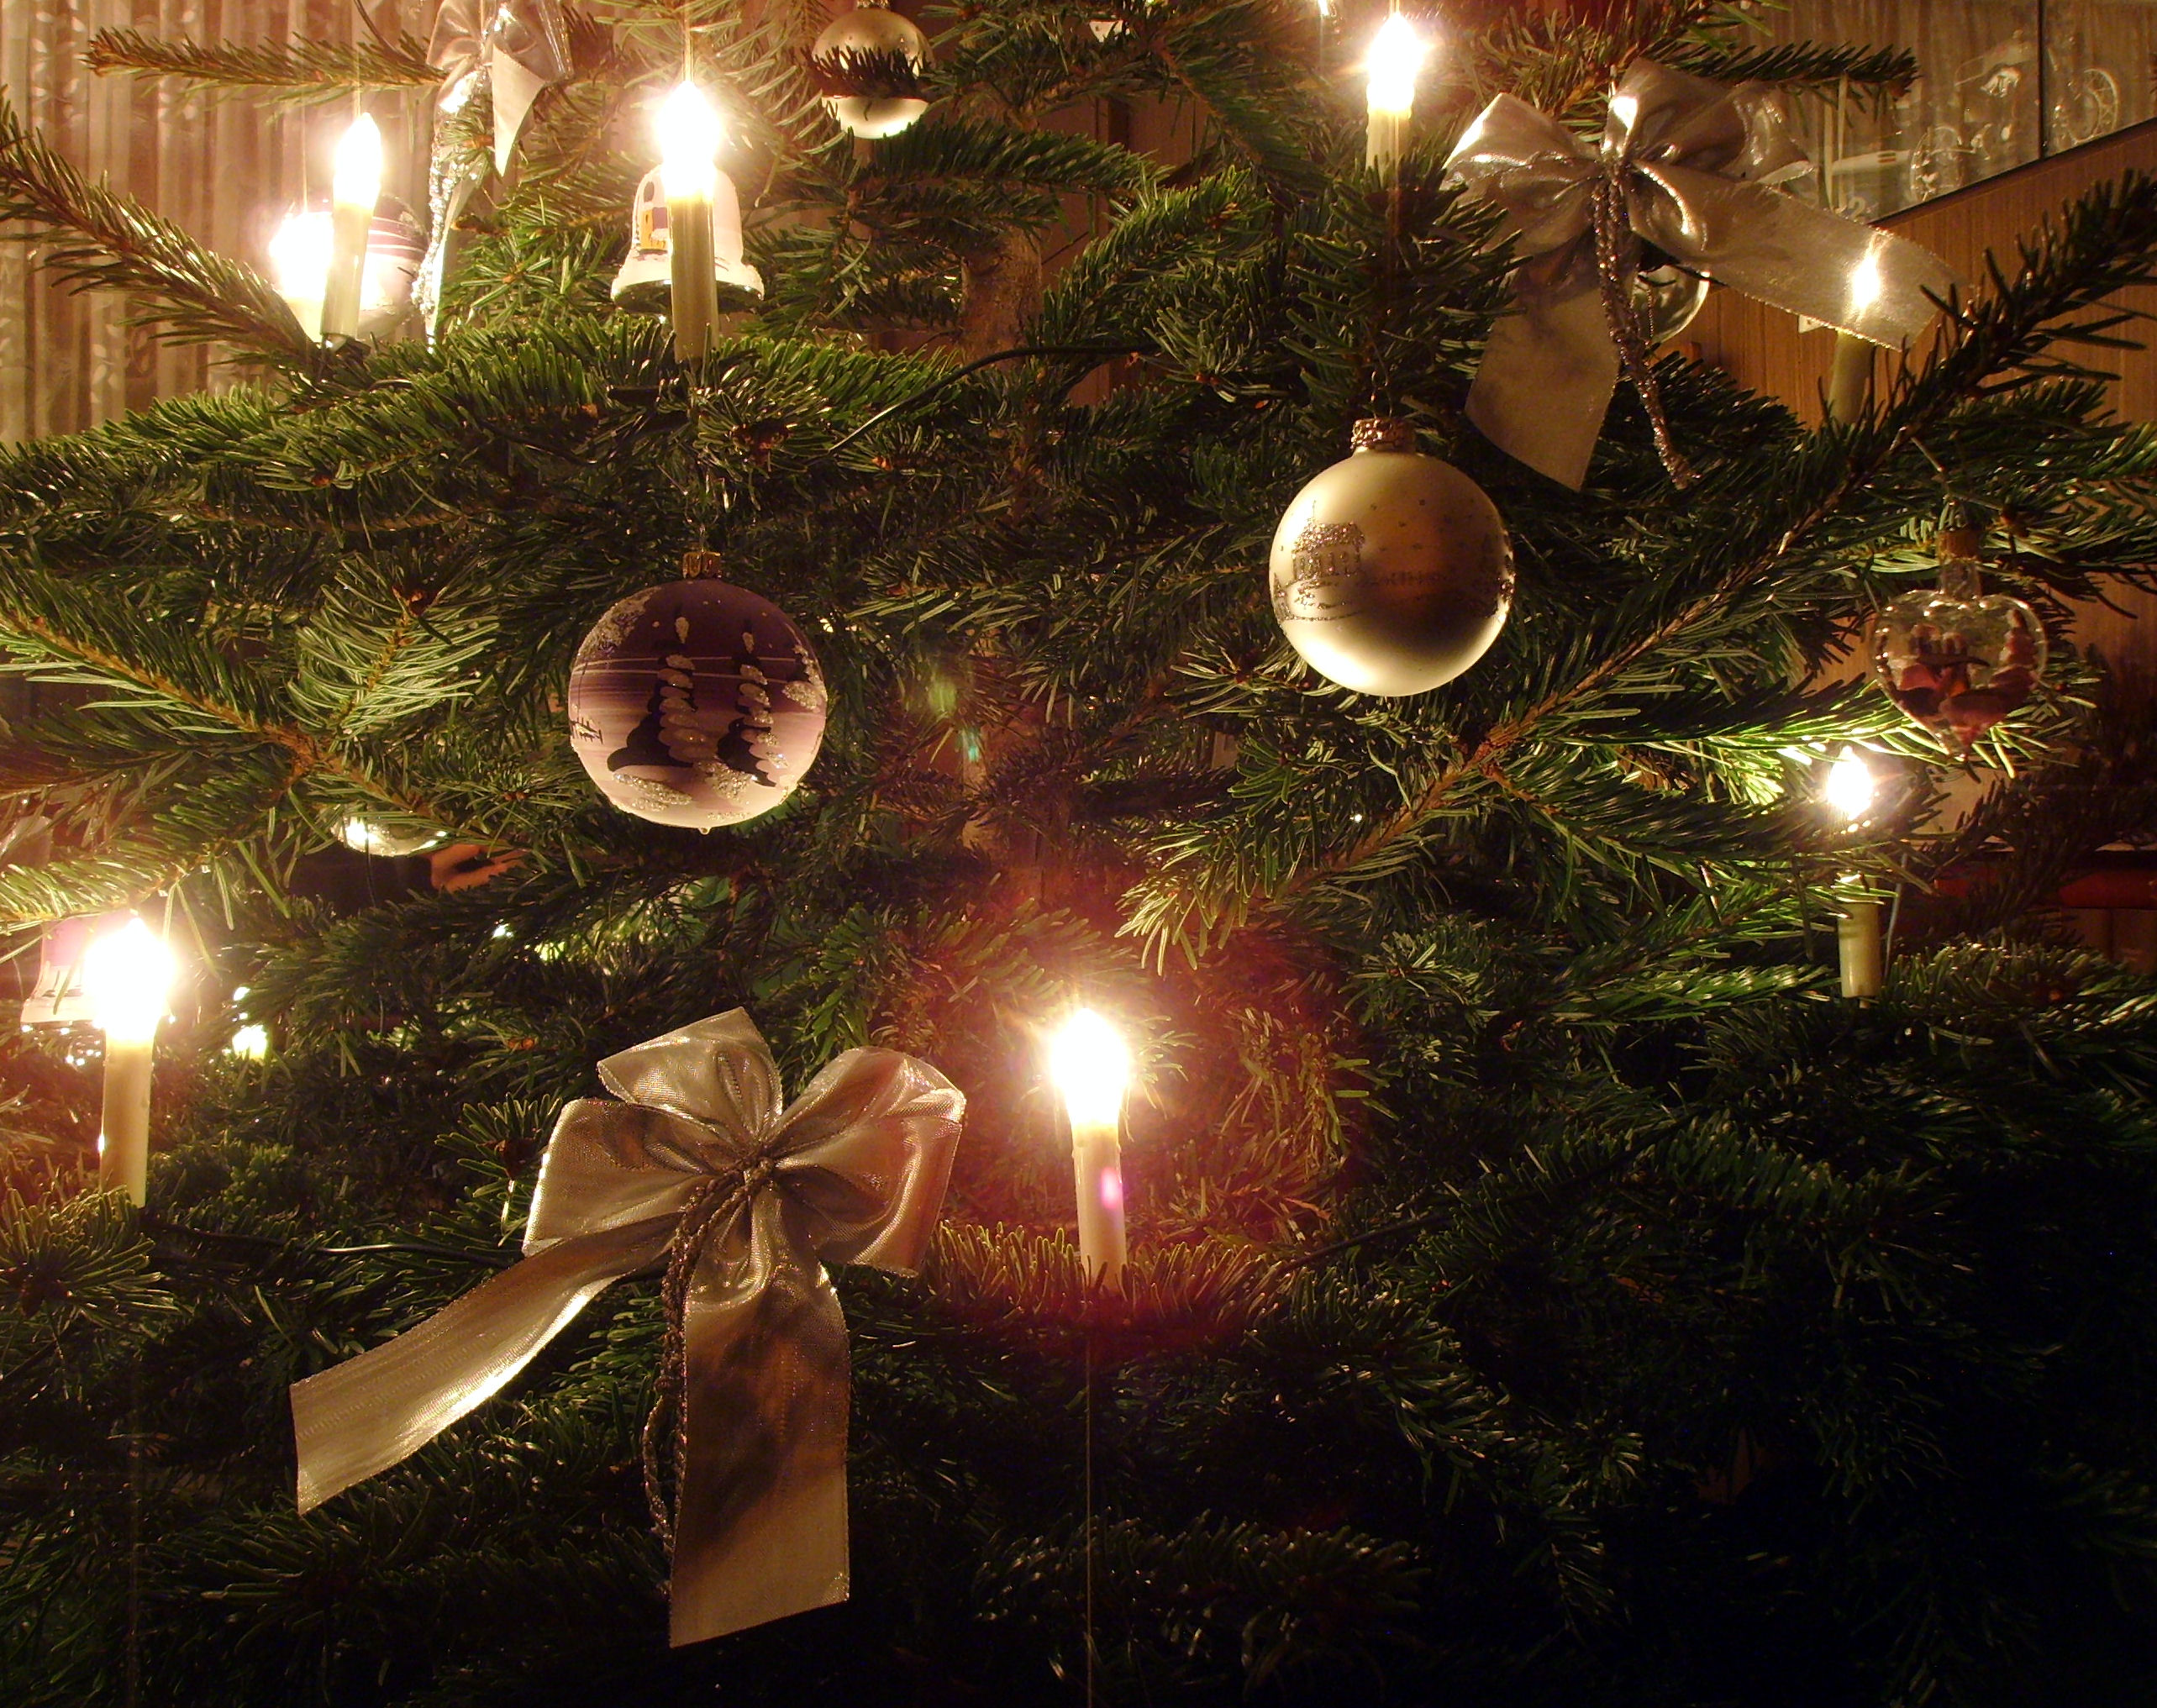 Candle Wallpaper Hd Archivo Candle On Christmas Tree 6 Jpg Wikipedia La